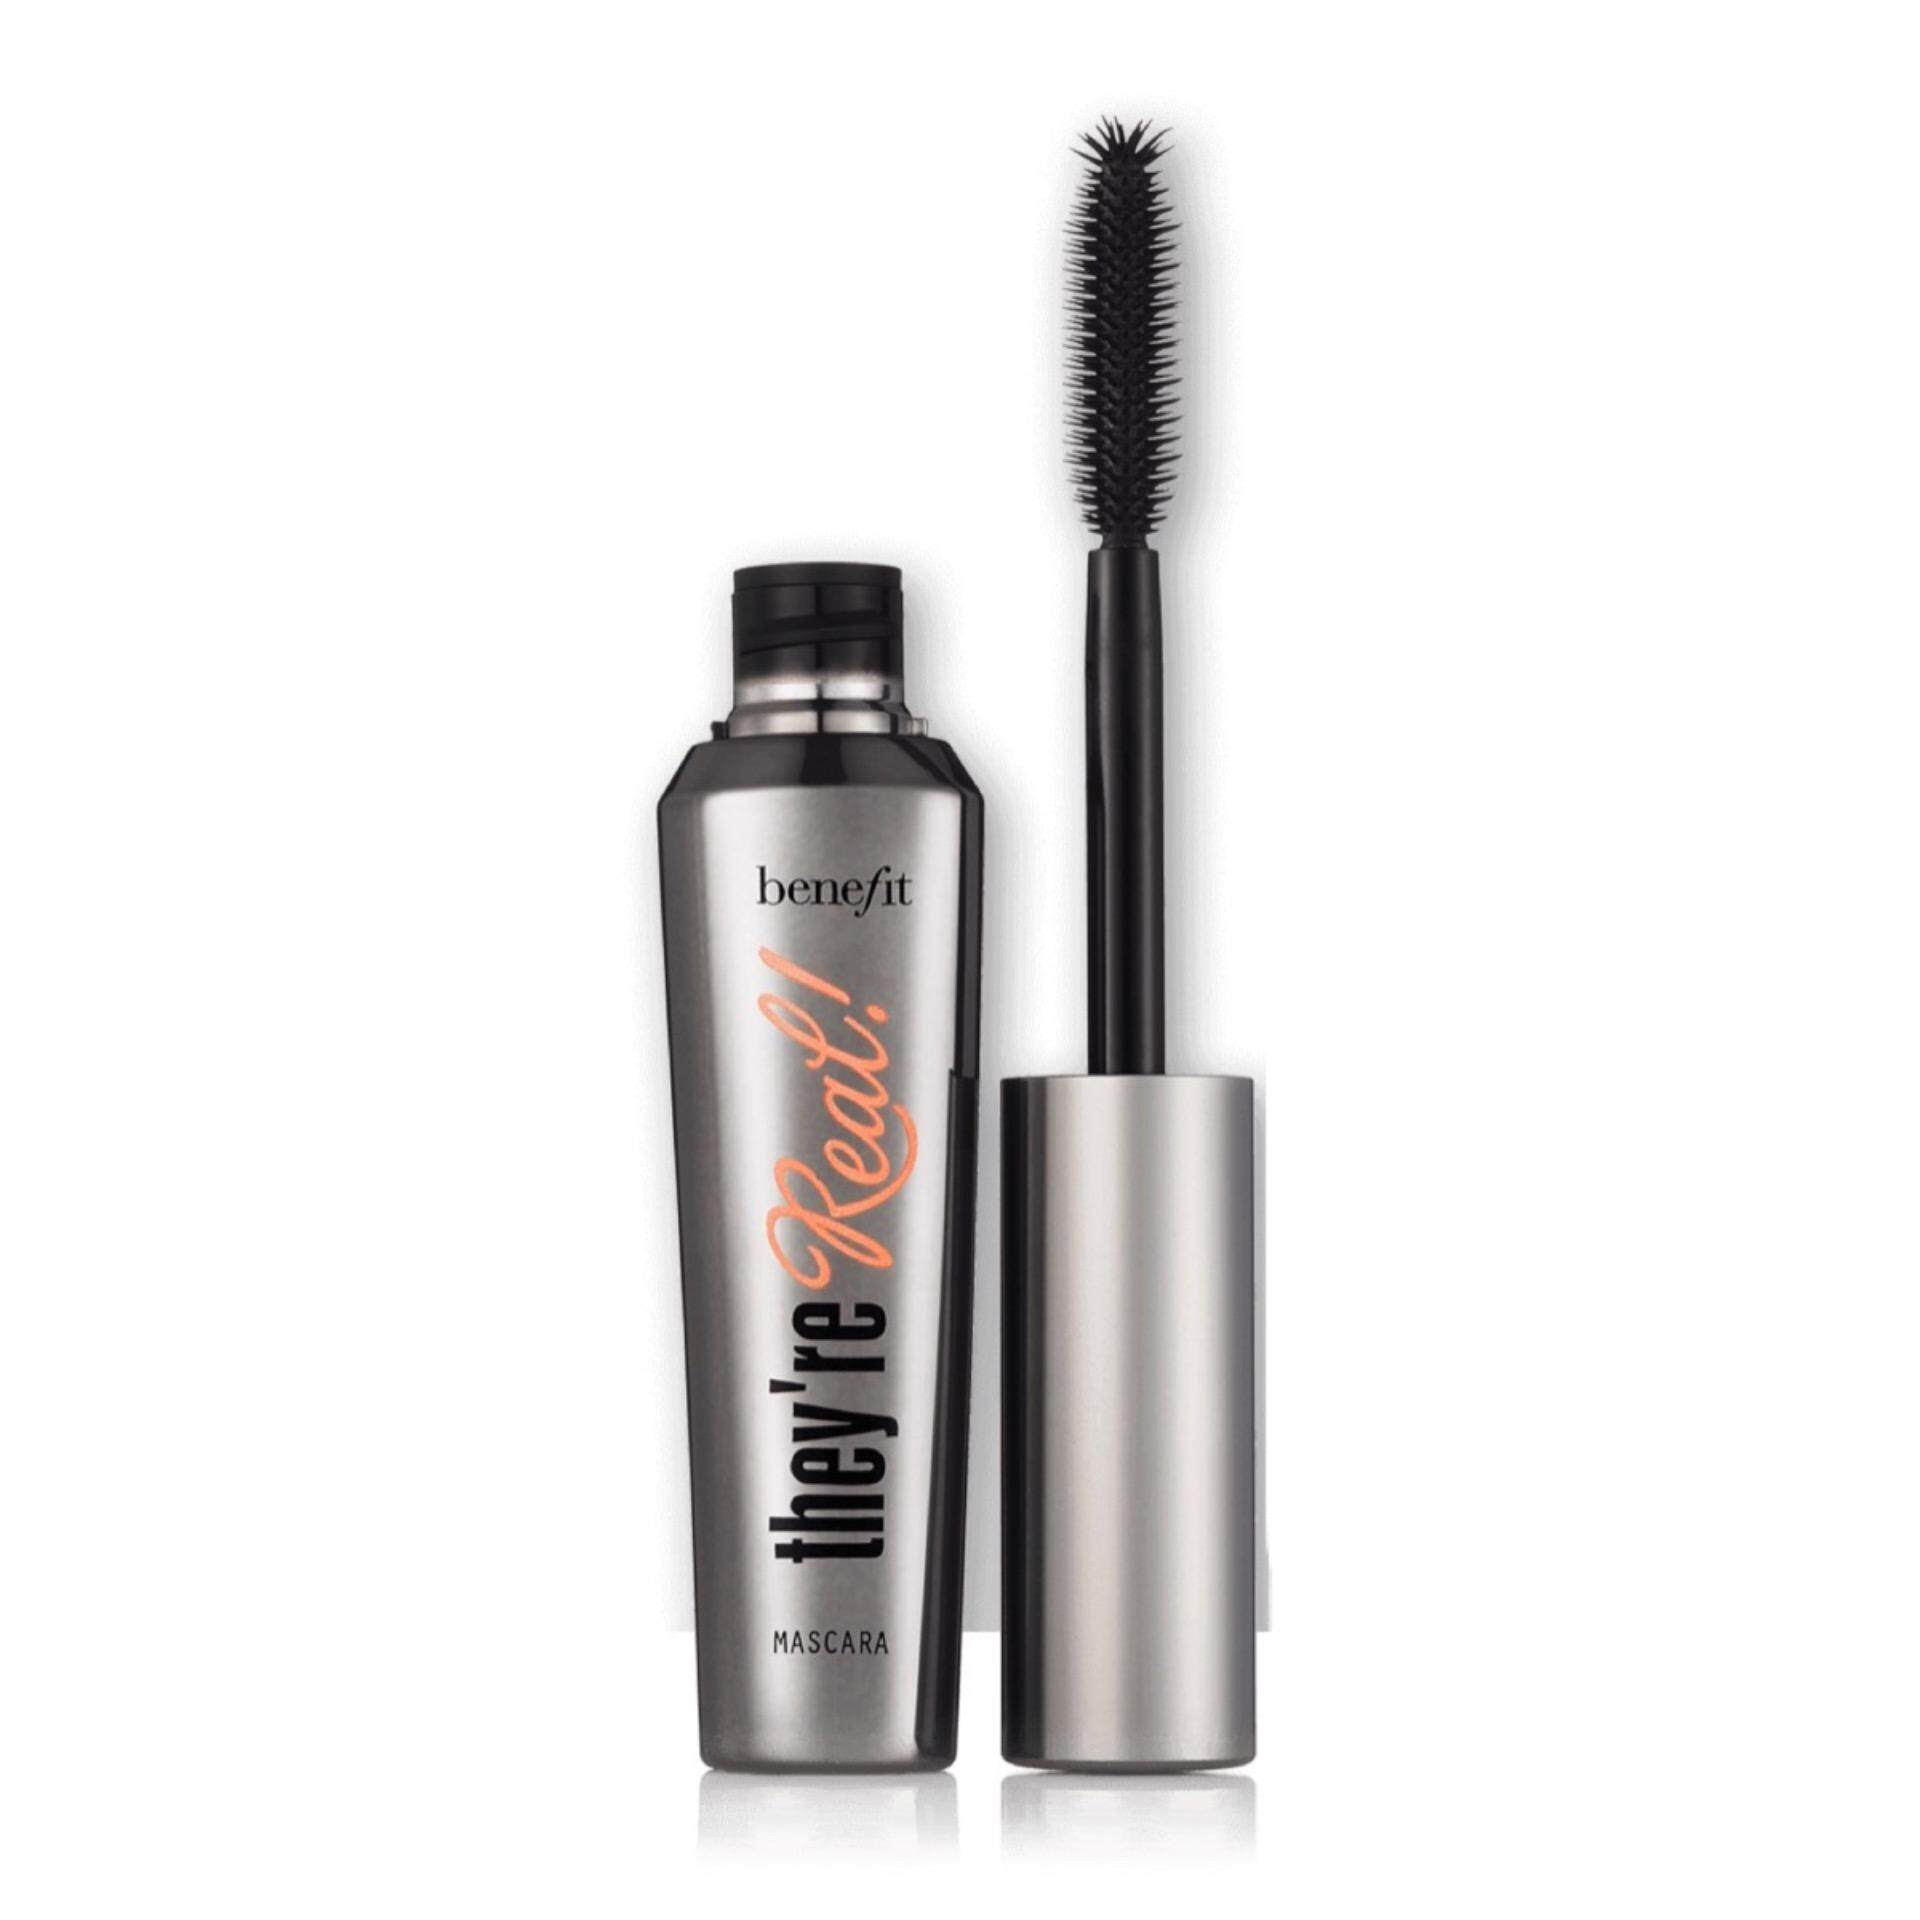 Benefit They're Real Mascara (8.5g)